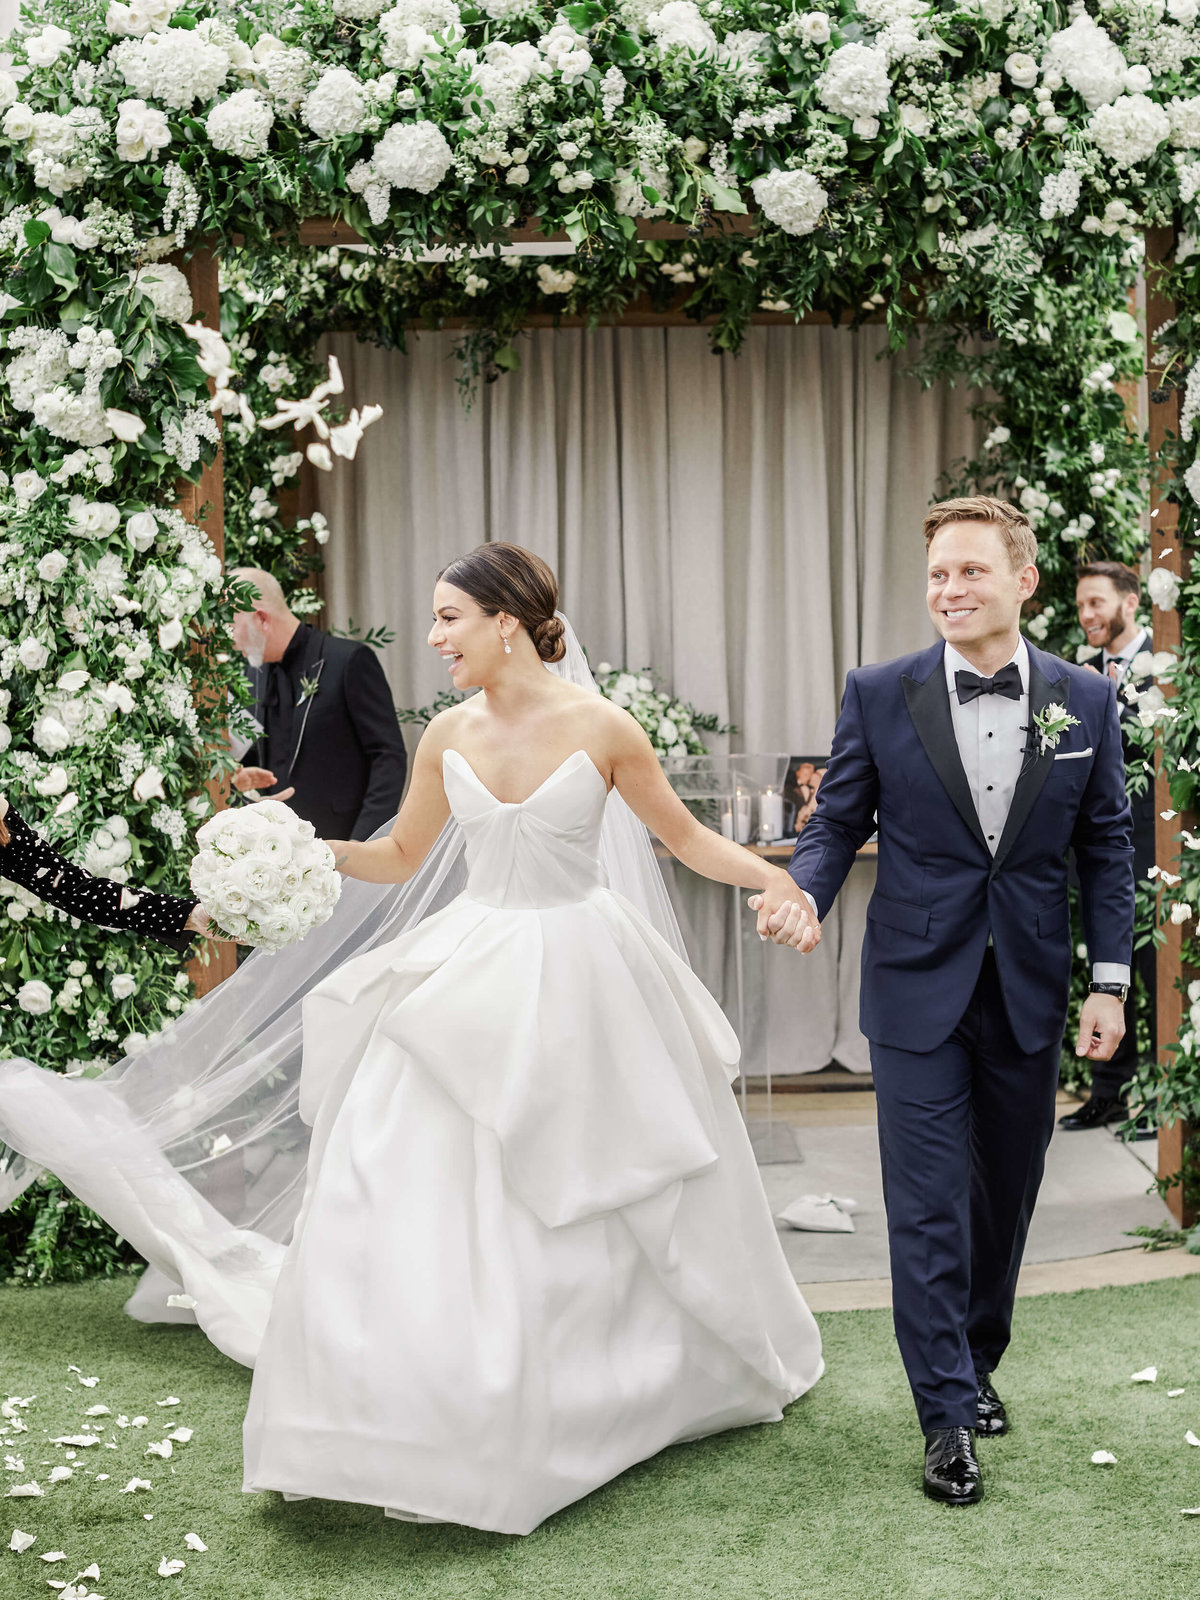 26-KTMerry-photography-Lea-Michele-celebrity-wedding-recessional